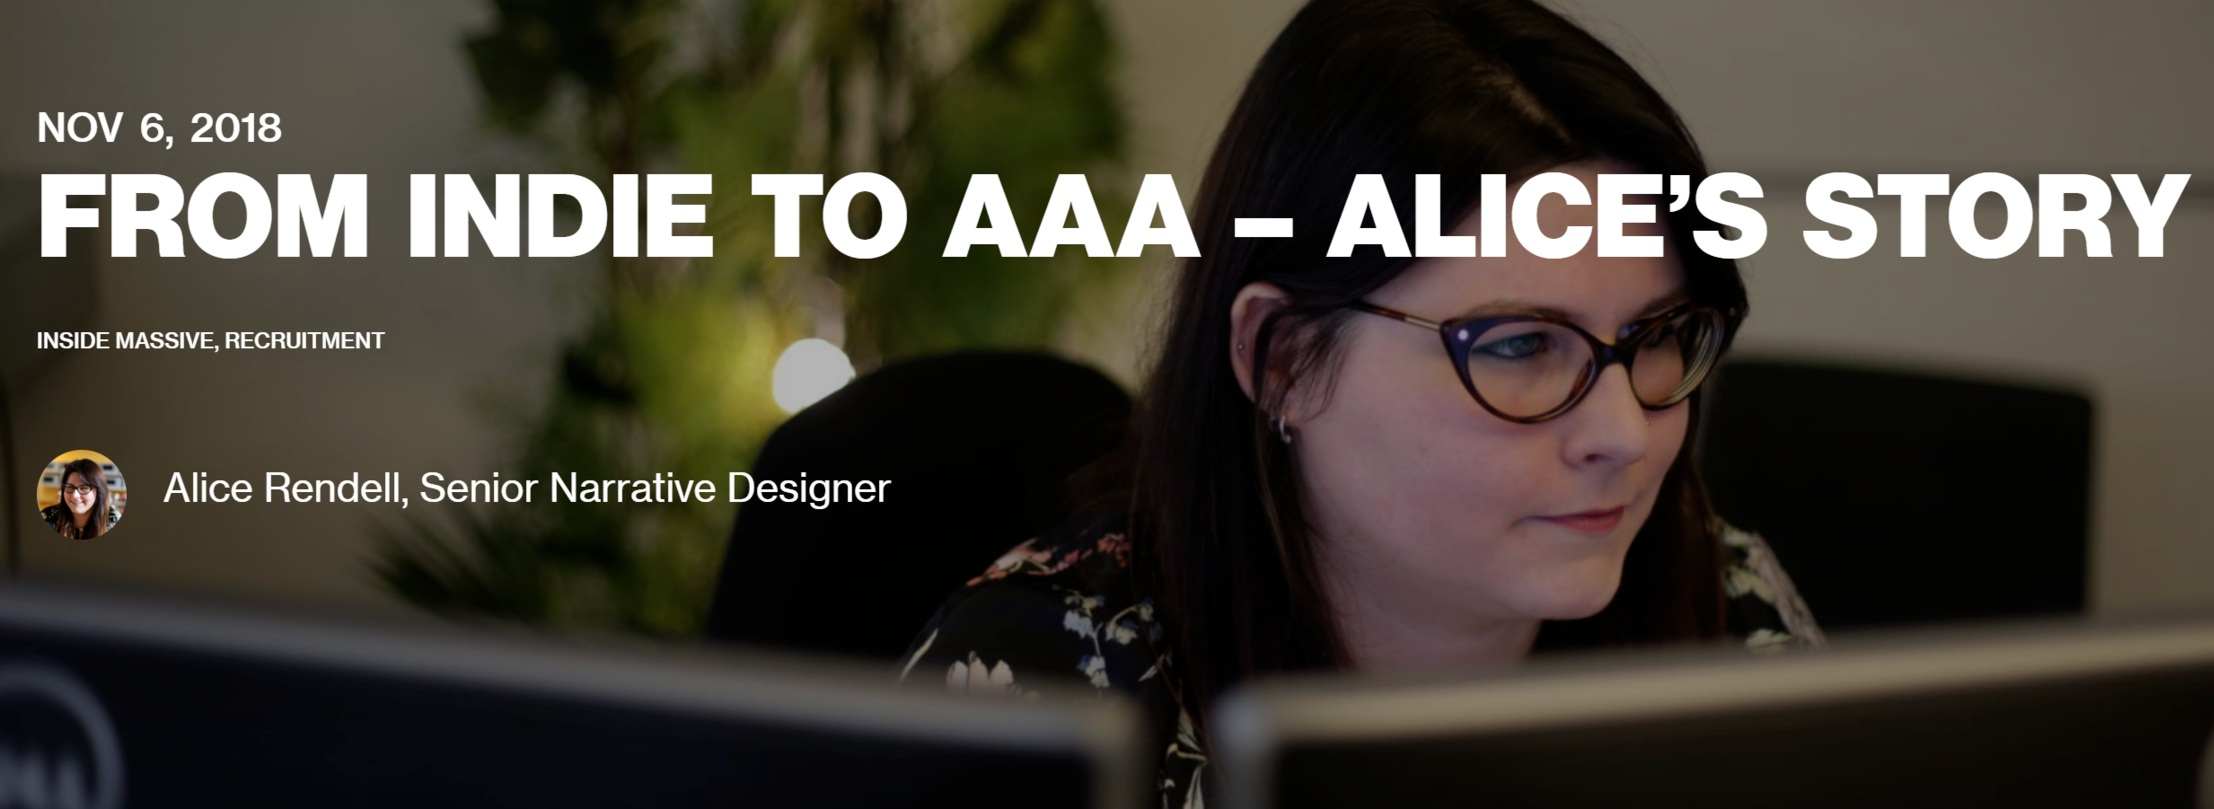 Blog post about my experience in moving from indie to AAA